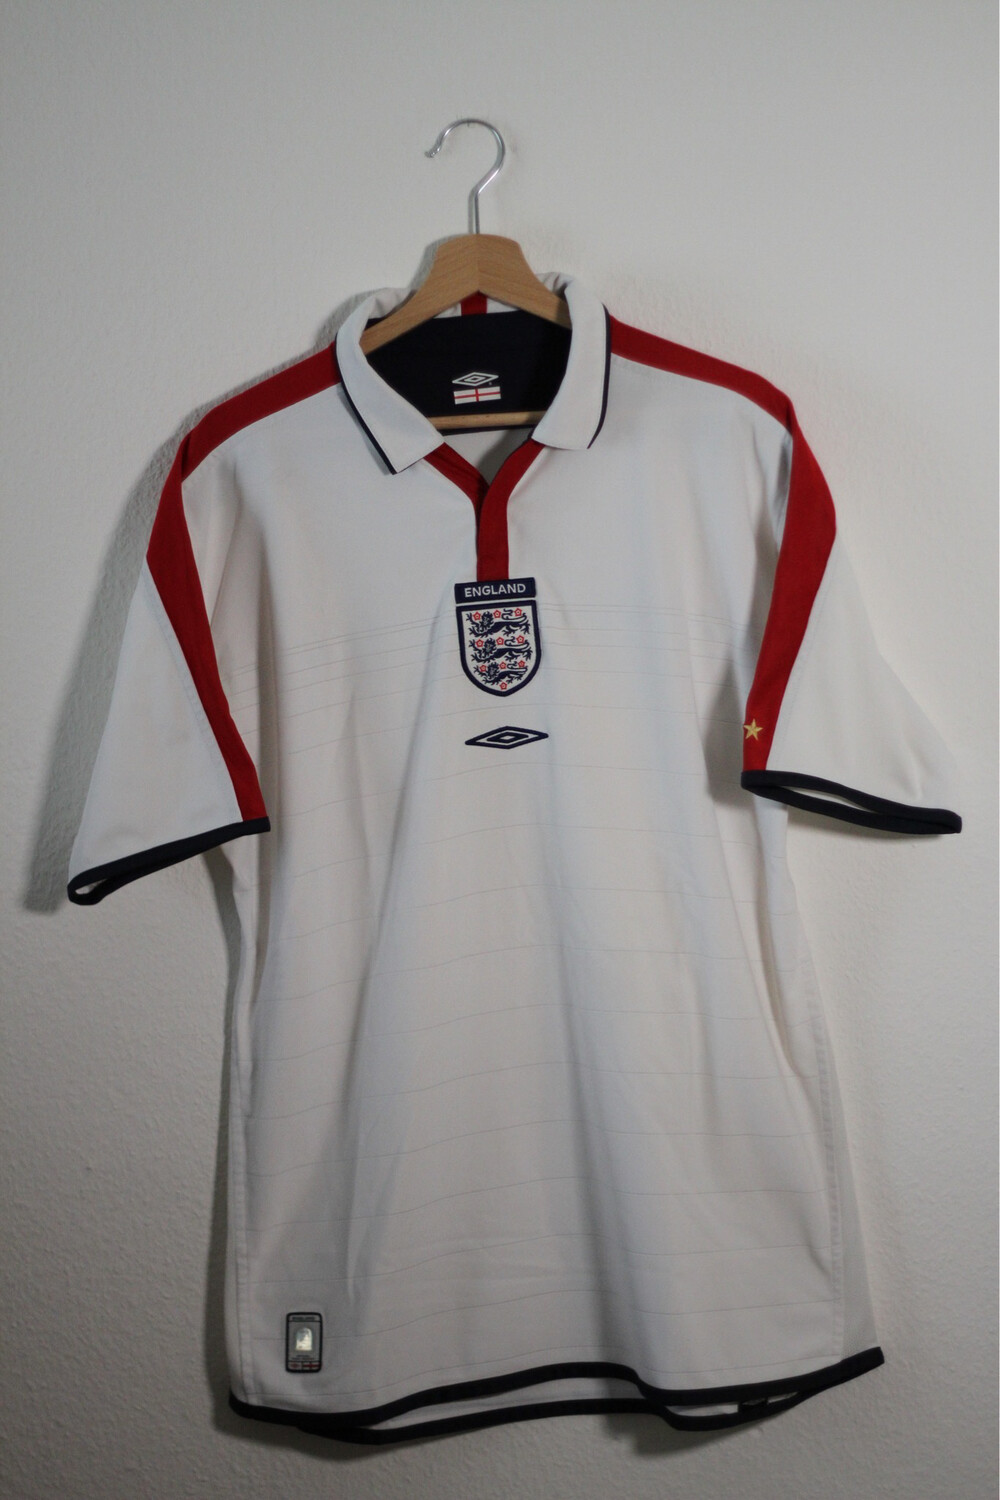 Angleterre 2003/05 HOME (réversible)